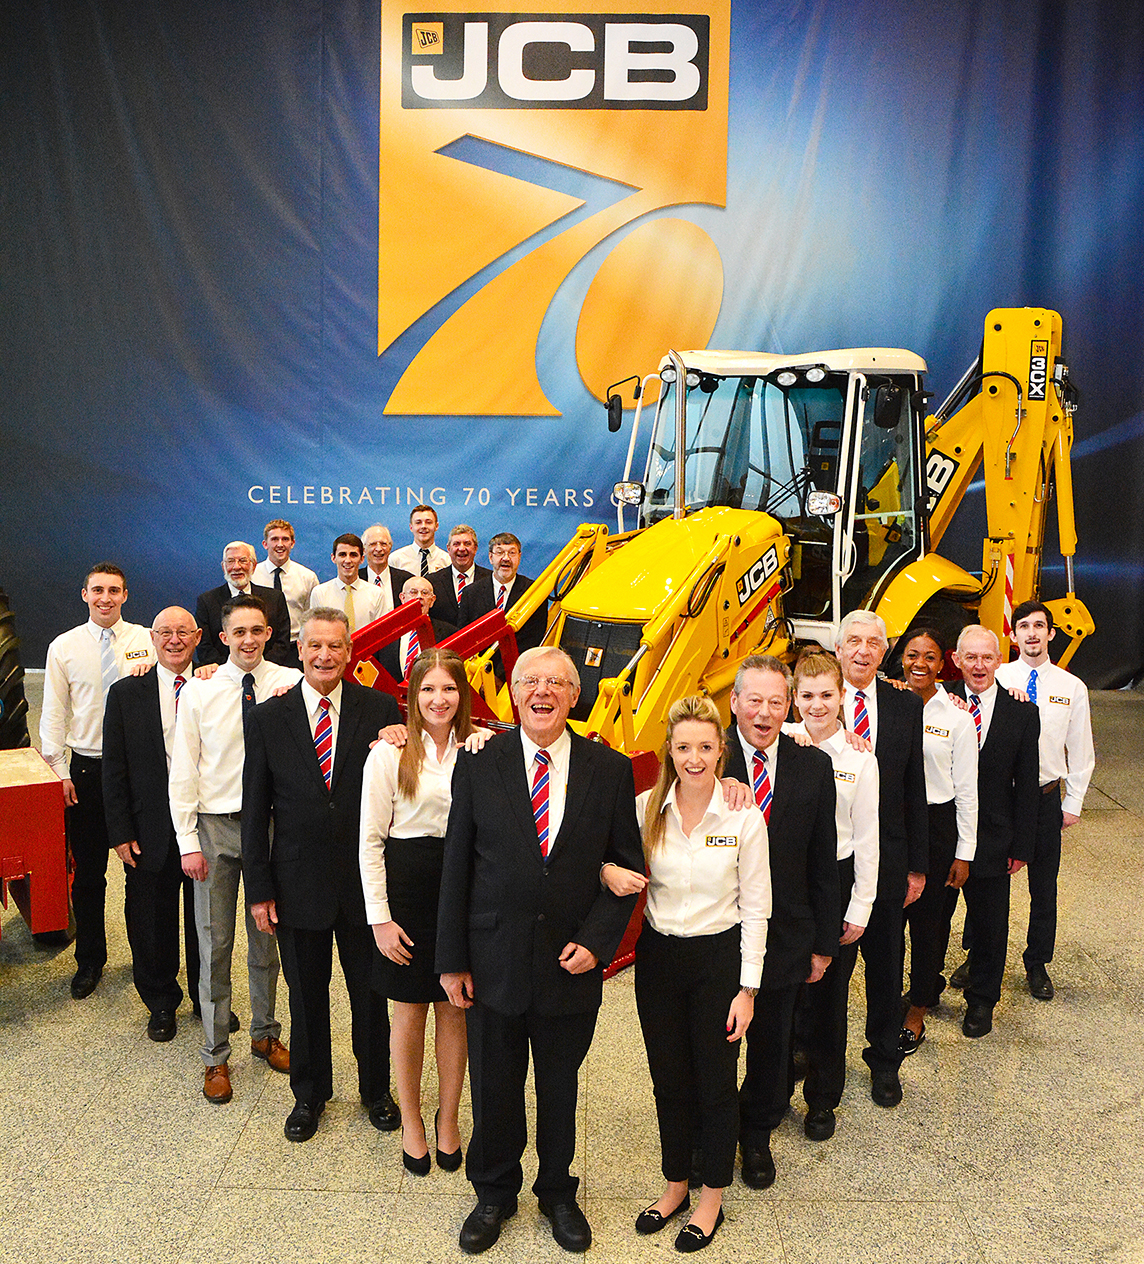 JCB 70th Anniversary